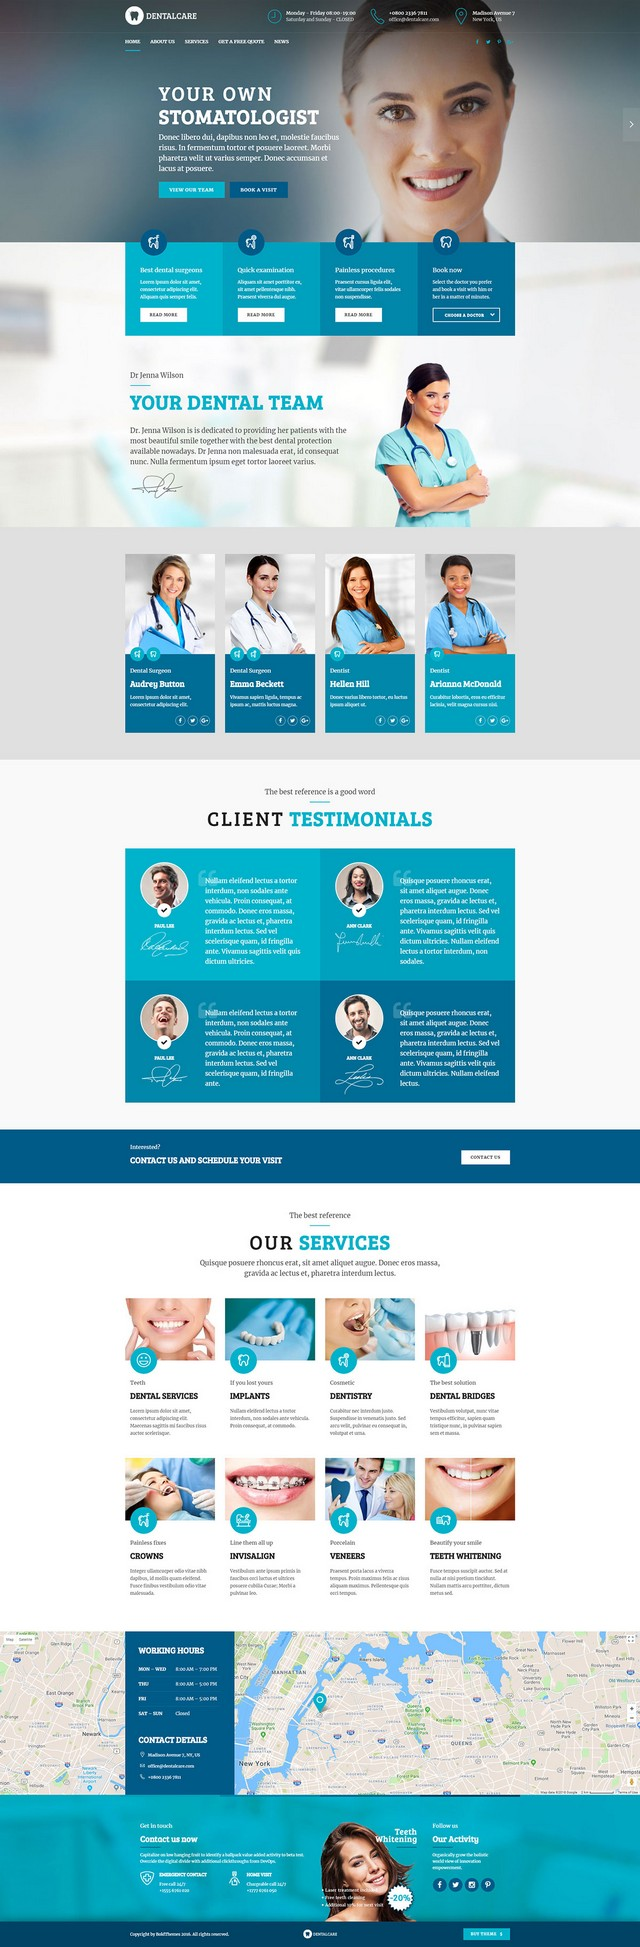 health and medical wordpress theme Medicare homepage layout for dentist